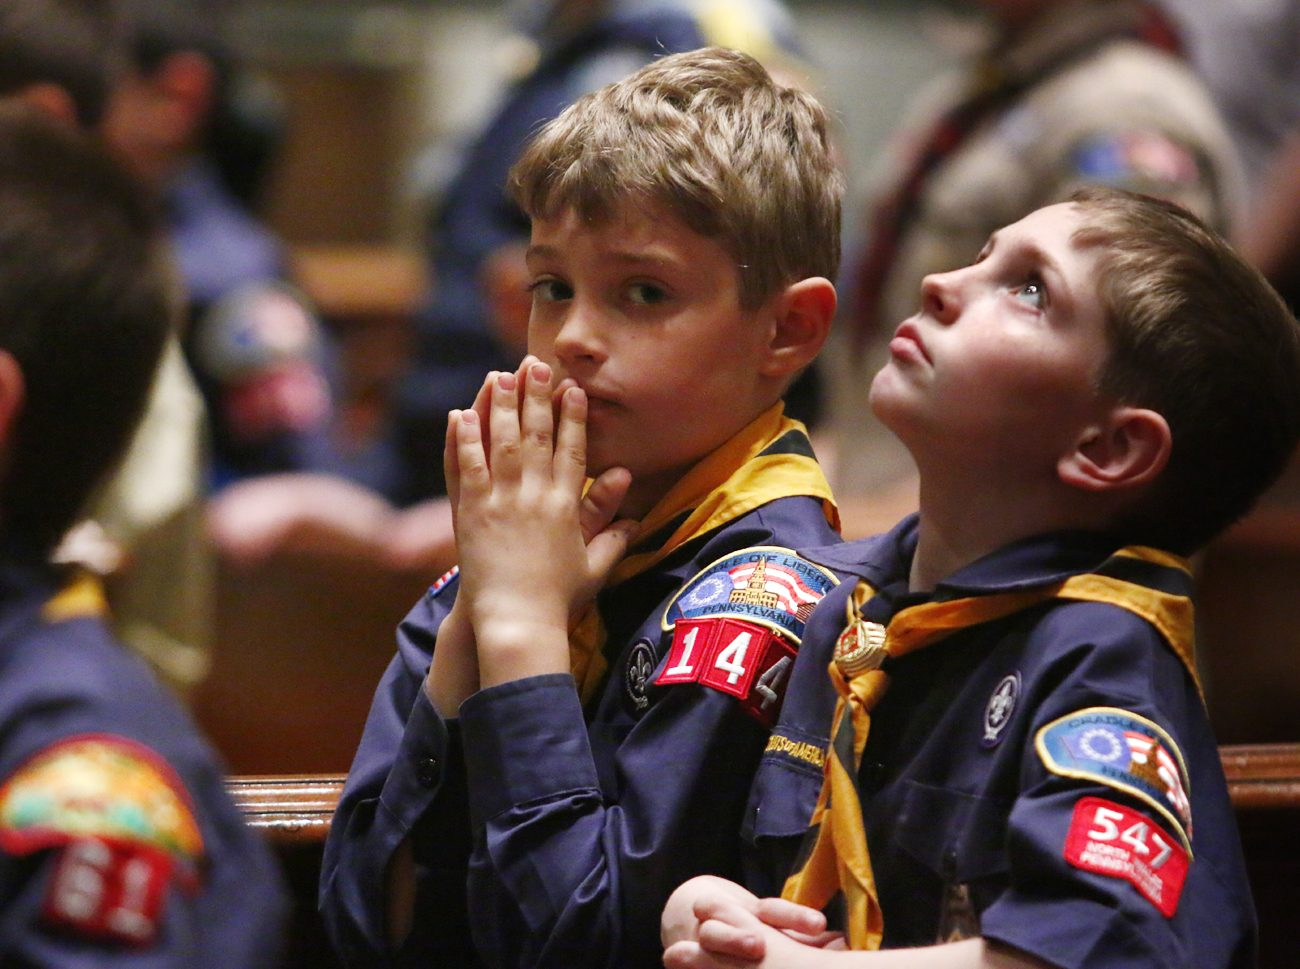 Two Cub Scouts get what may be their first look at the Cathedral Basilica of SS. Peter and Paul during the annual Mass for about 200 Catholic Scouts and their leaders April 22.